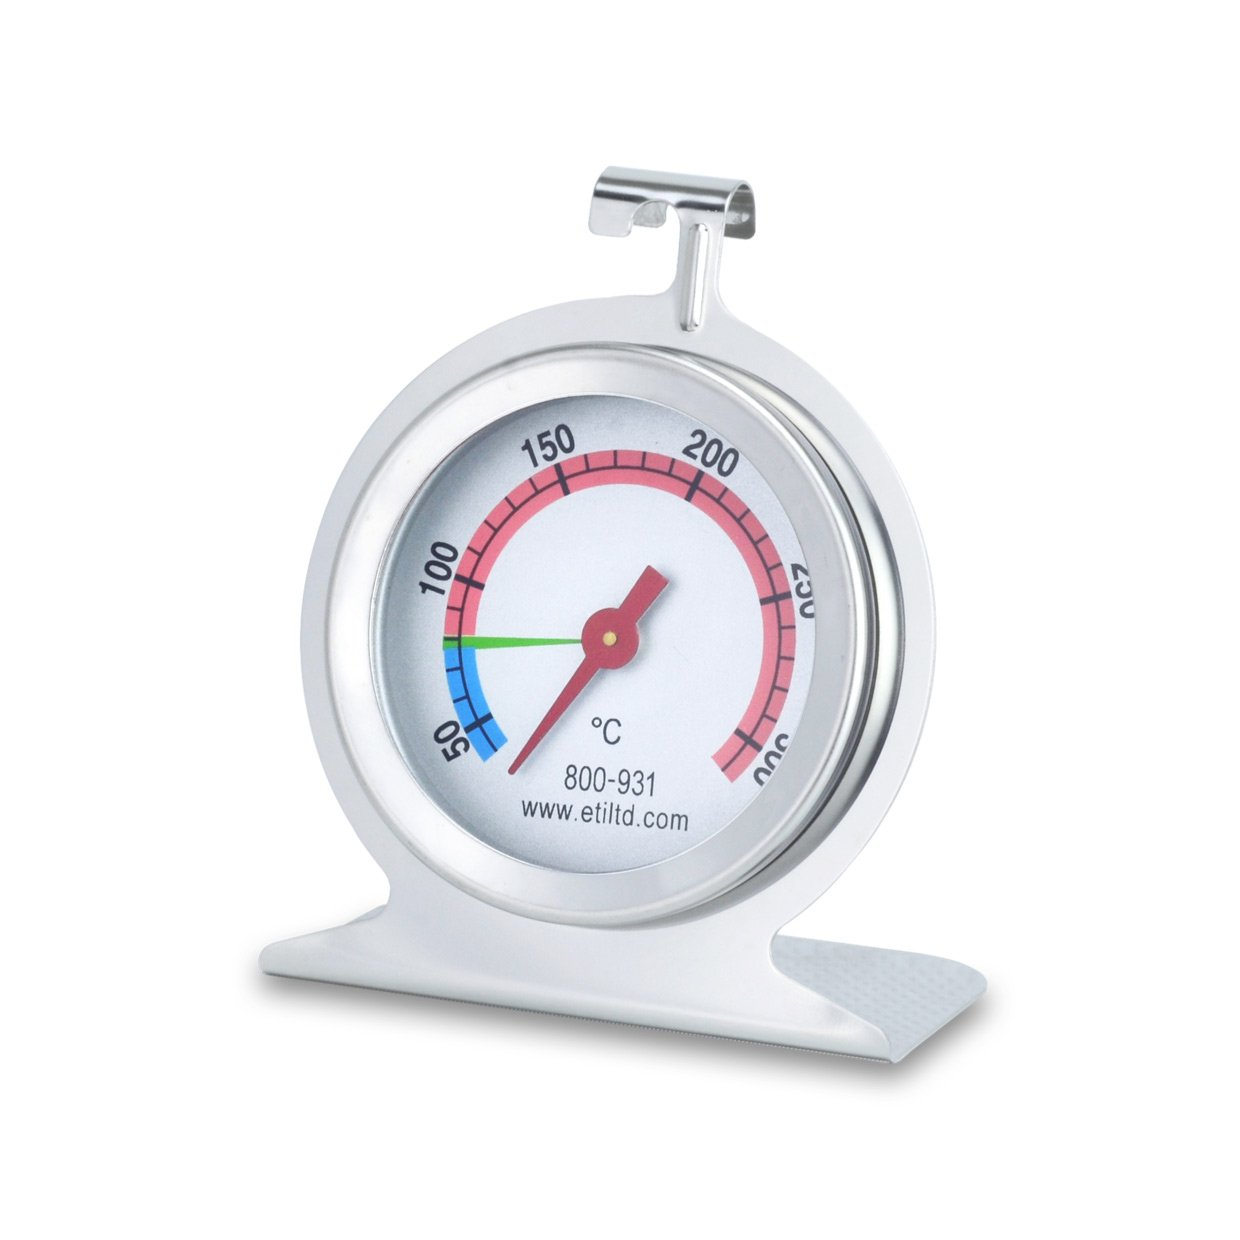 ETI oven thermometer with 45mm dial ETI Ltd 800-931